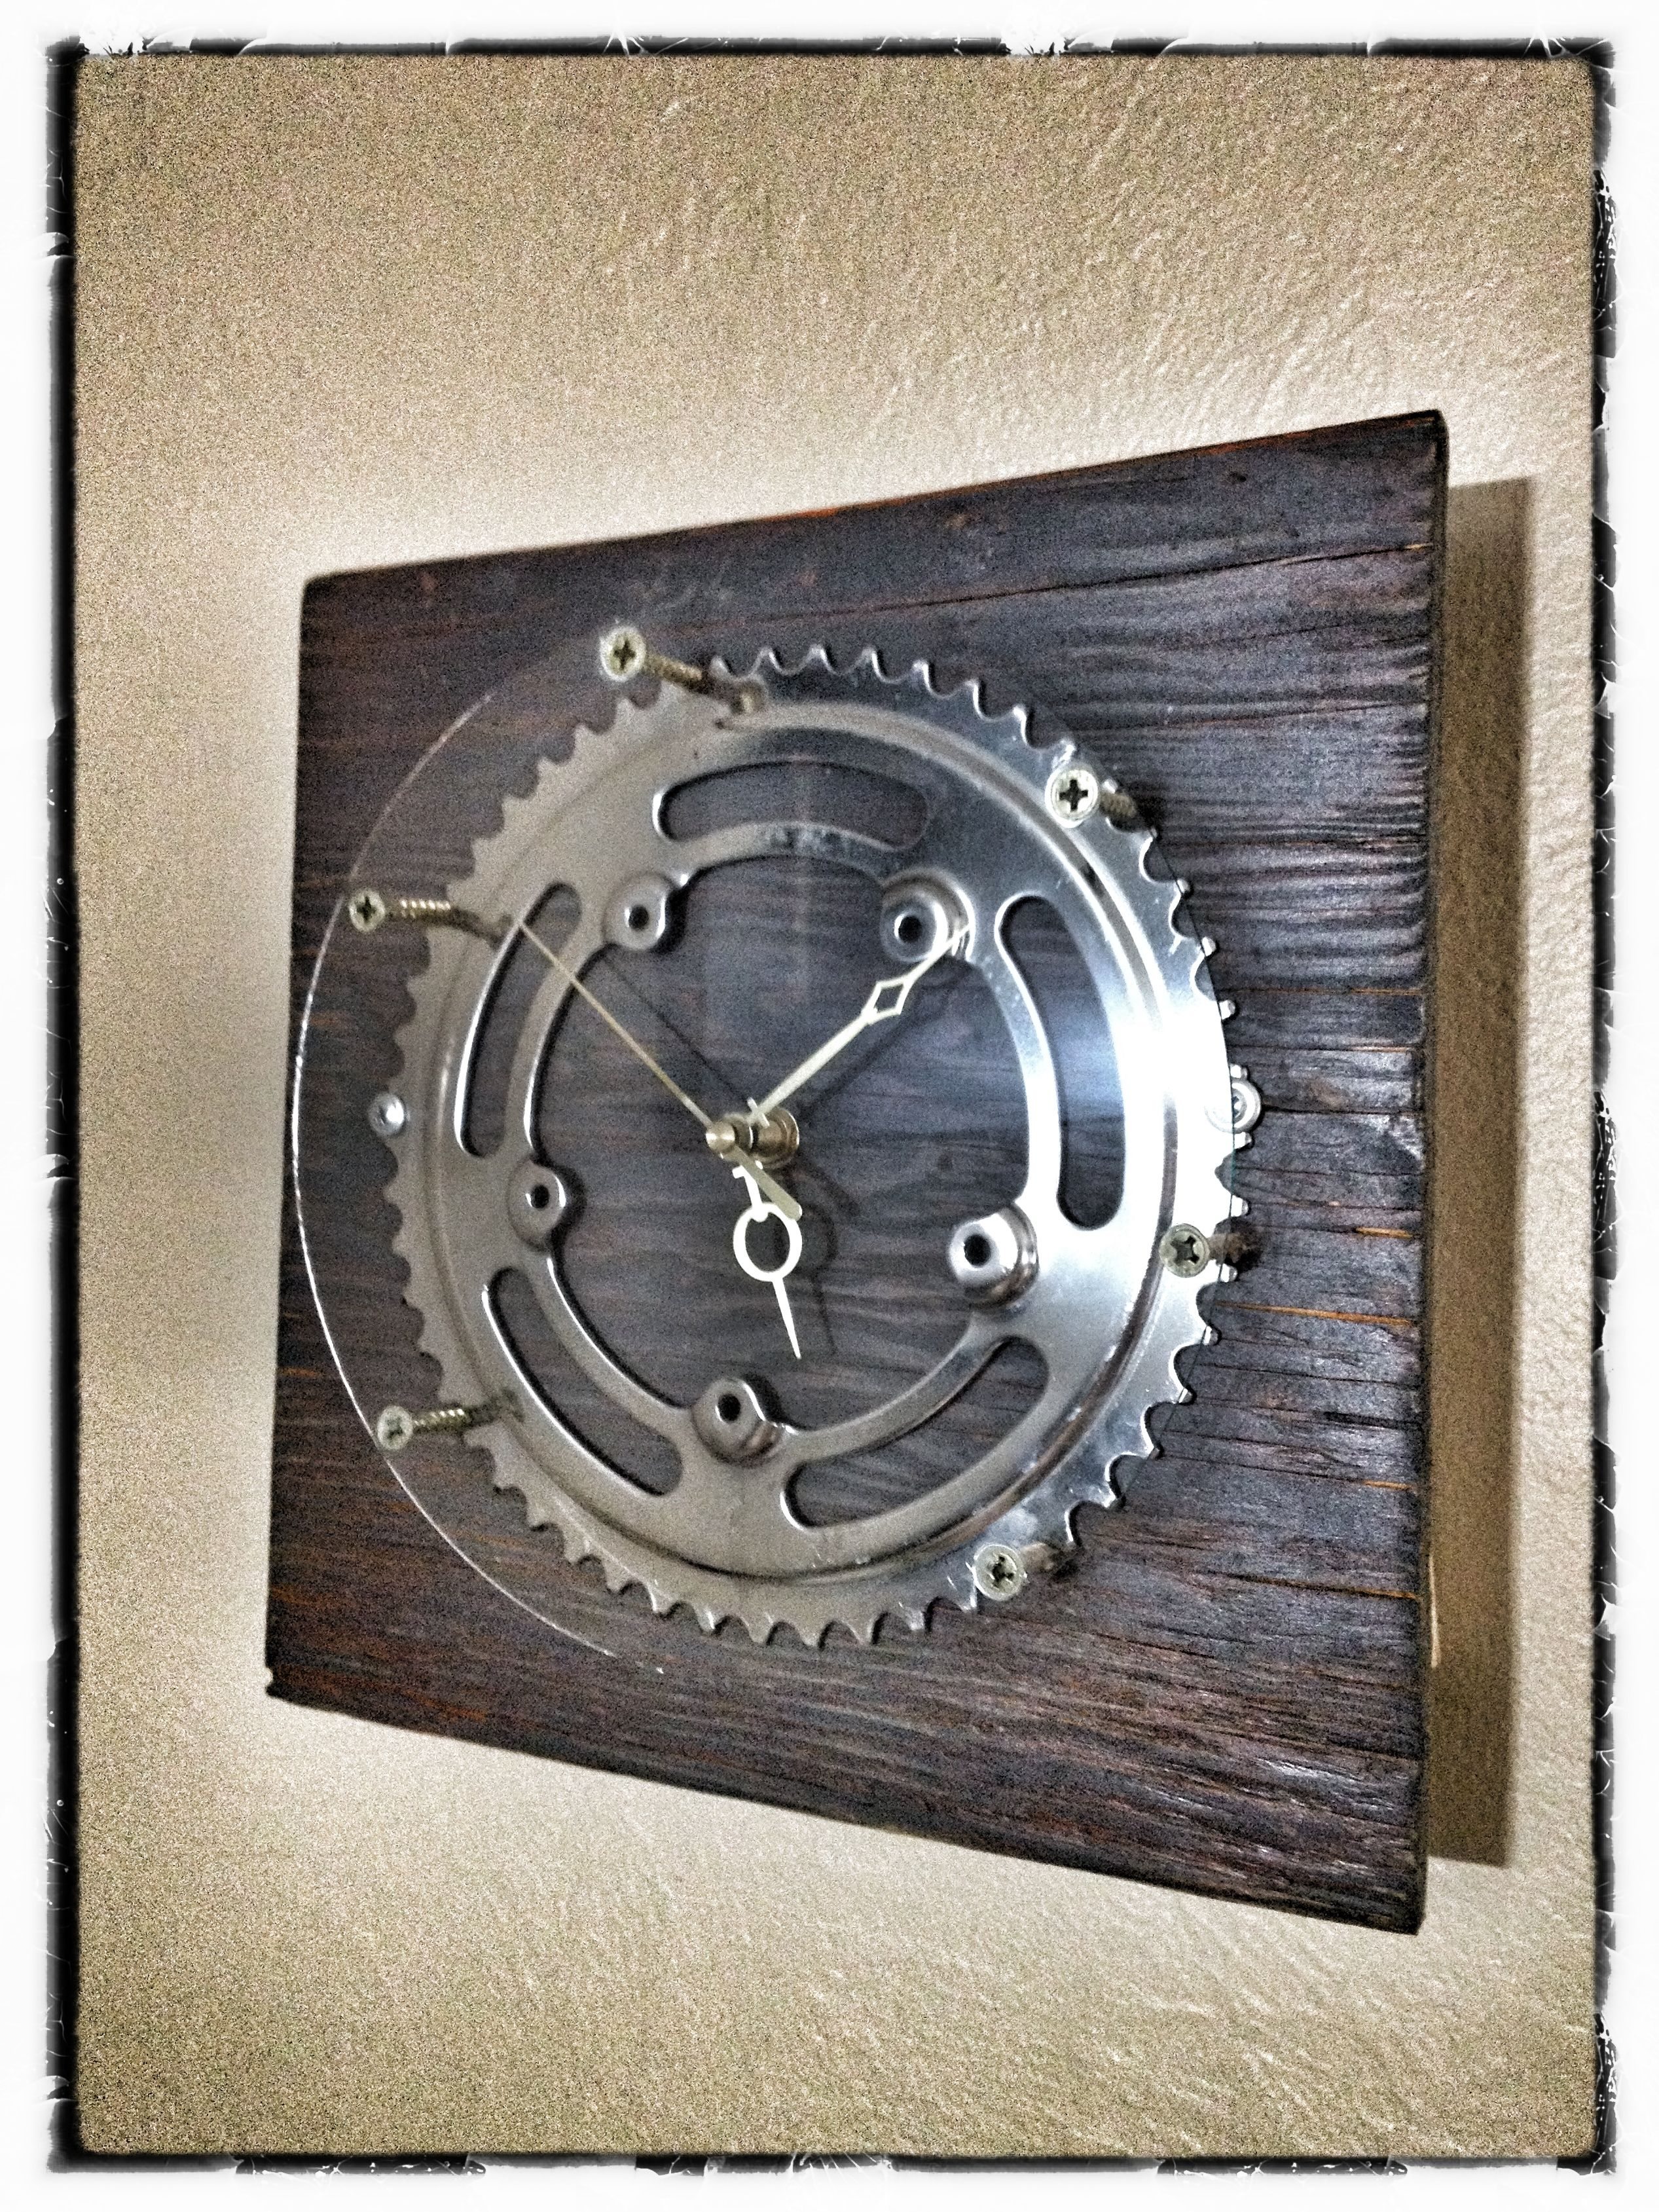 Homemade clock from scrap wood bike parts and clock parts from a homemade clock from scrap wood bike parts and clock parts from a 5 clock amipublicfo Image collections